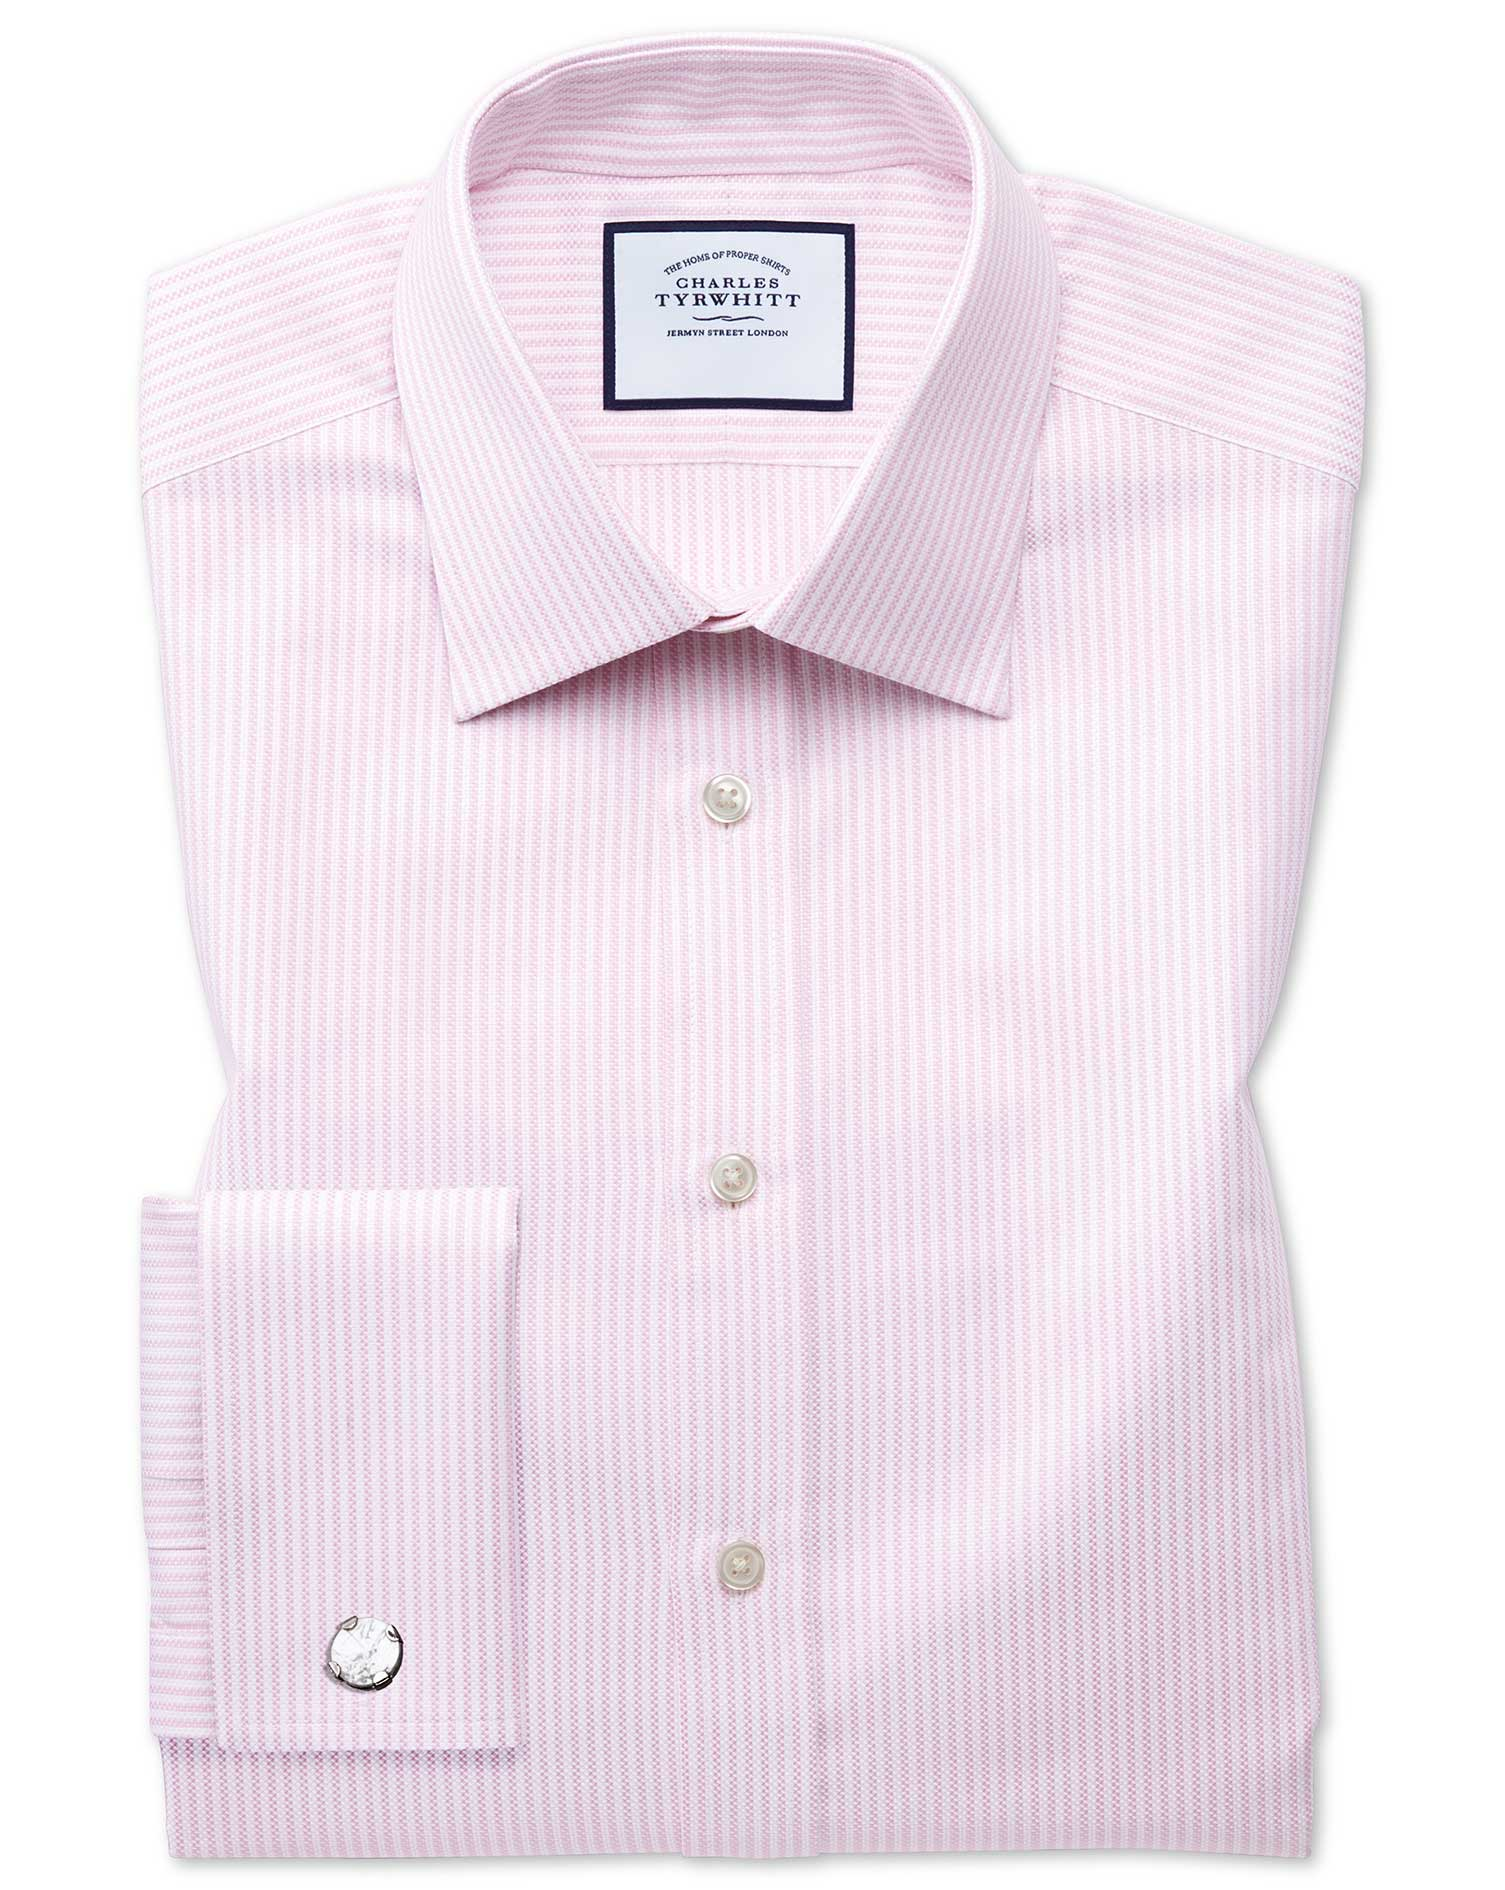 Slim Fit Egyptian Cotton Royal Oxford Pink and White Stripe Formal Shirt Double Cuff Size 15.5/34 by